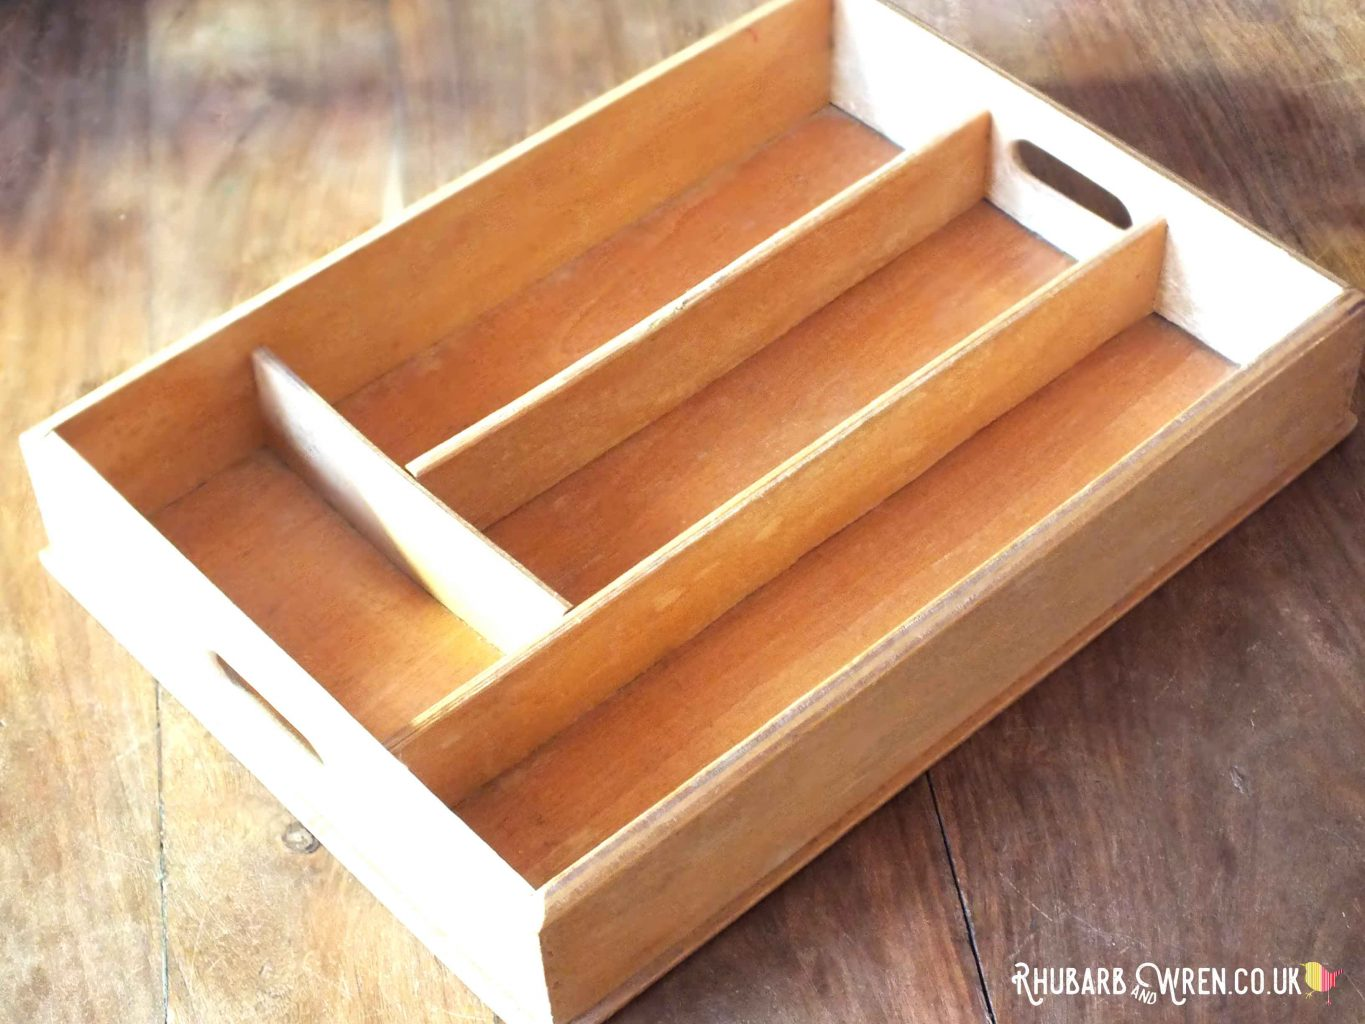 Empty vintage wooden cutlery tray with compartments and handles